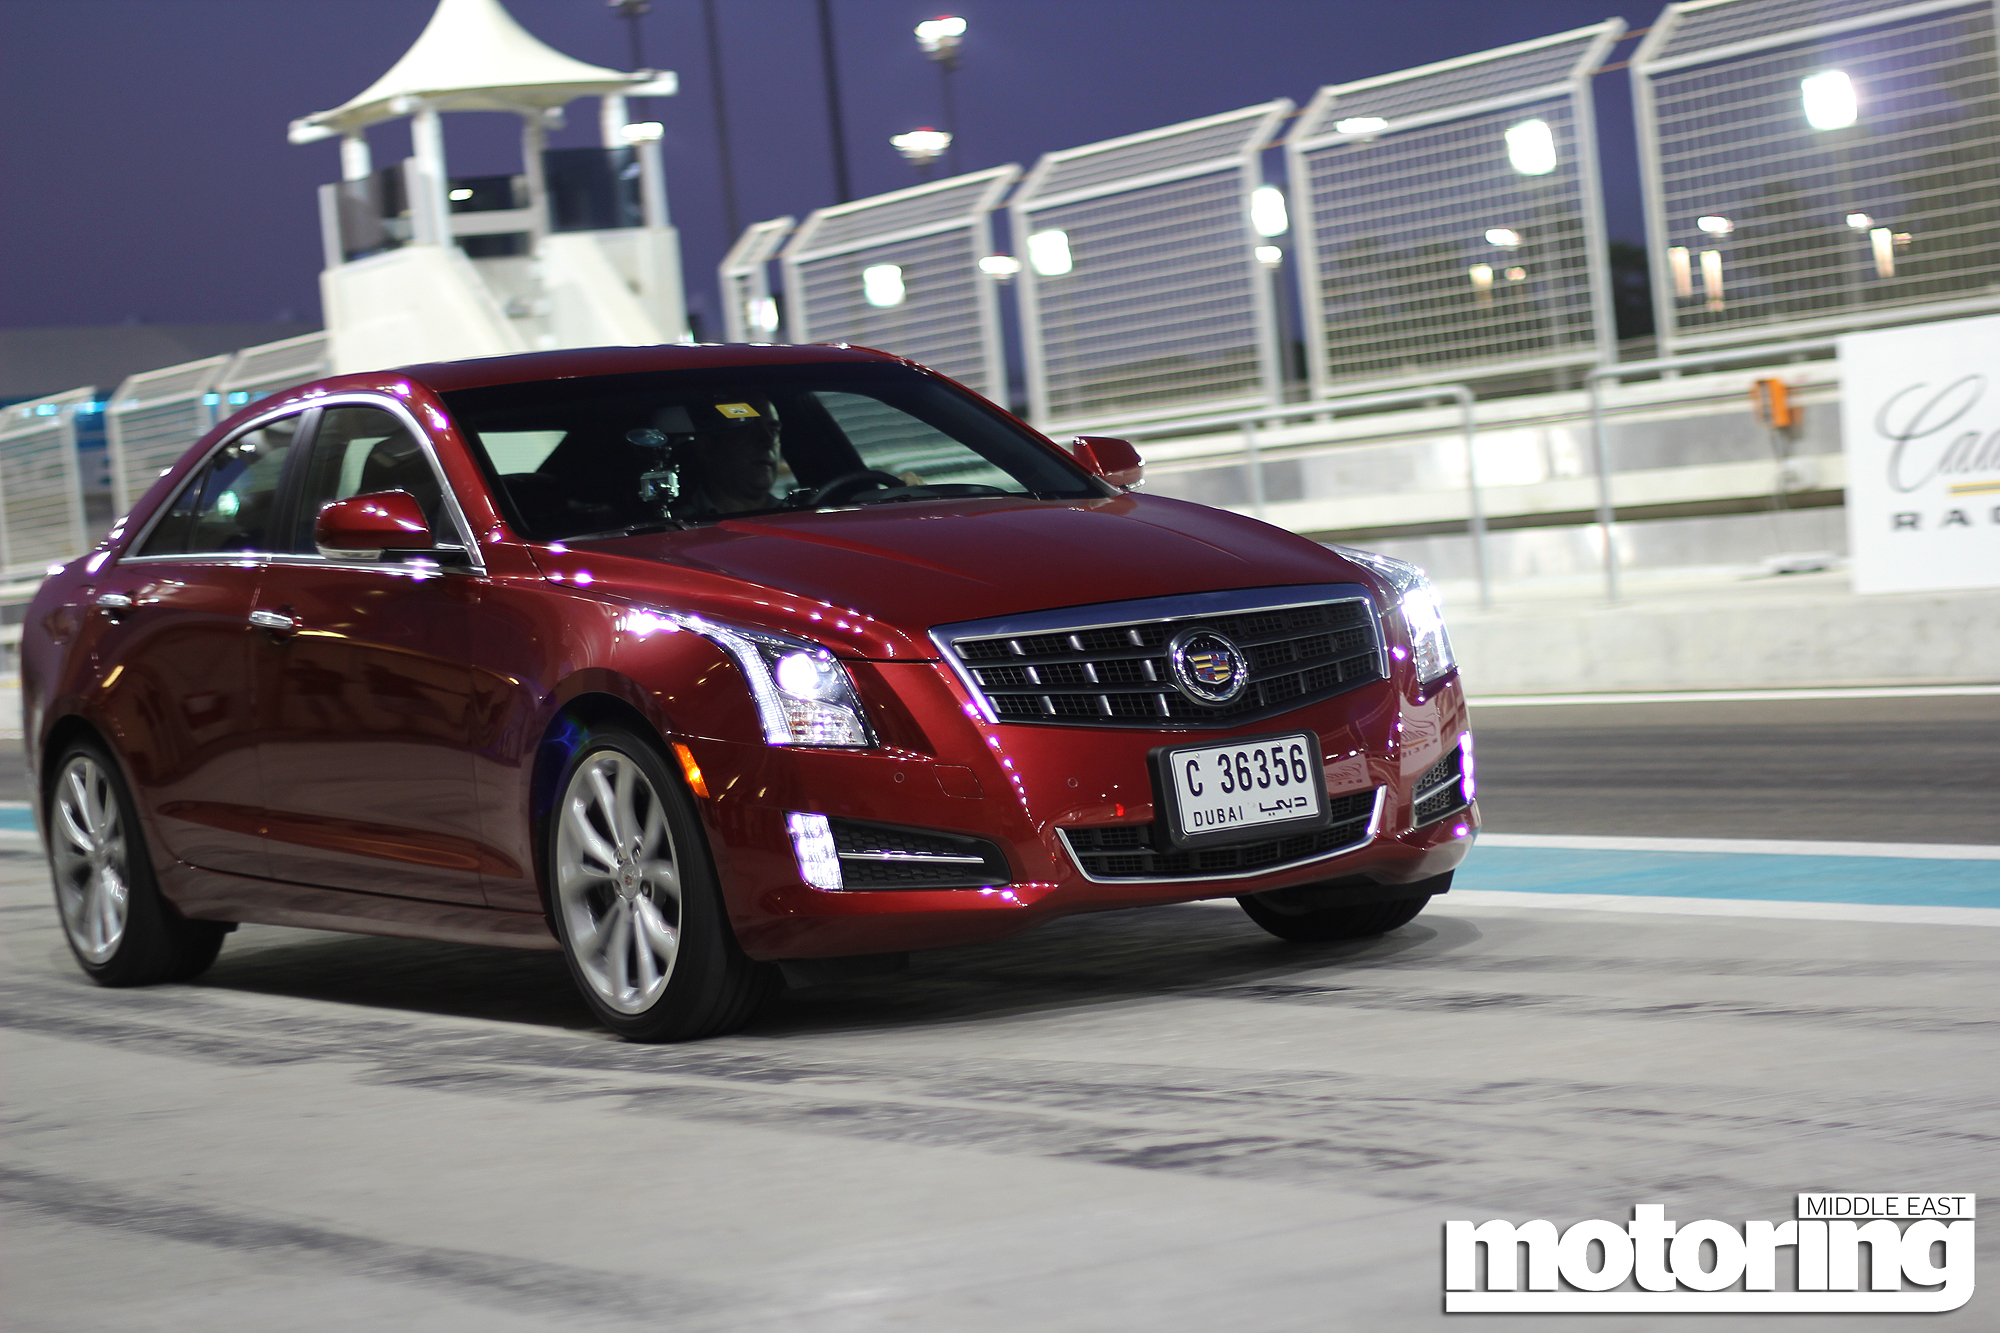 Shahzads Best Moments Of 2012 Motoring Middle East Car News Cadillac Xts Wiring Diagram Ats Launch At Yas Marina Circuit In Abu Dhabi Uae 36 V6 Tested